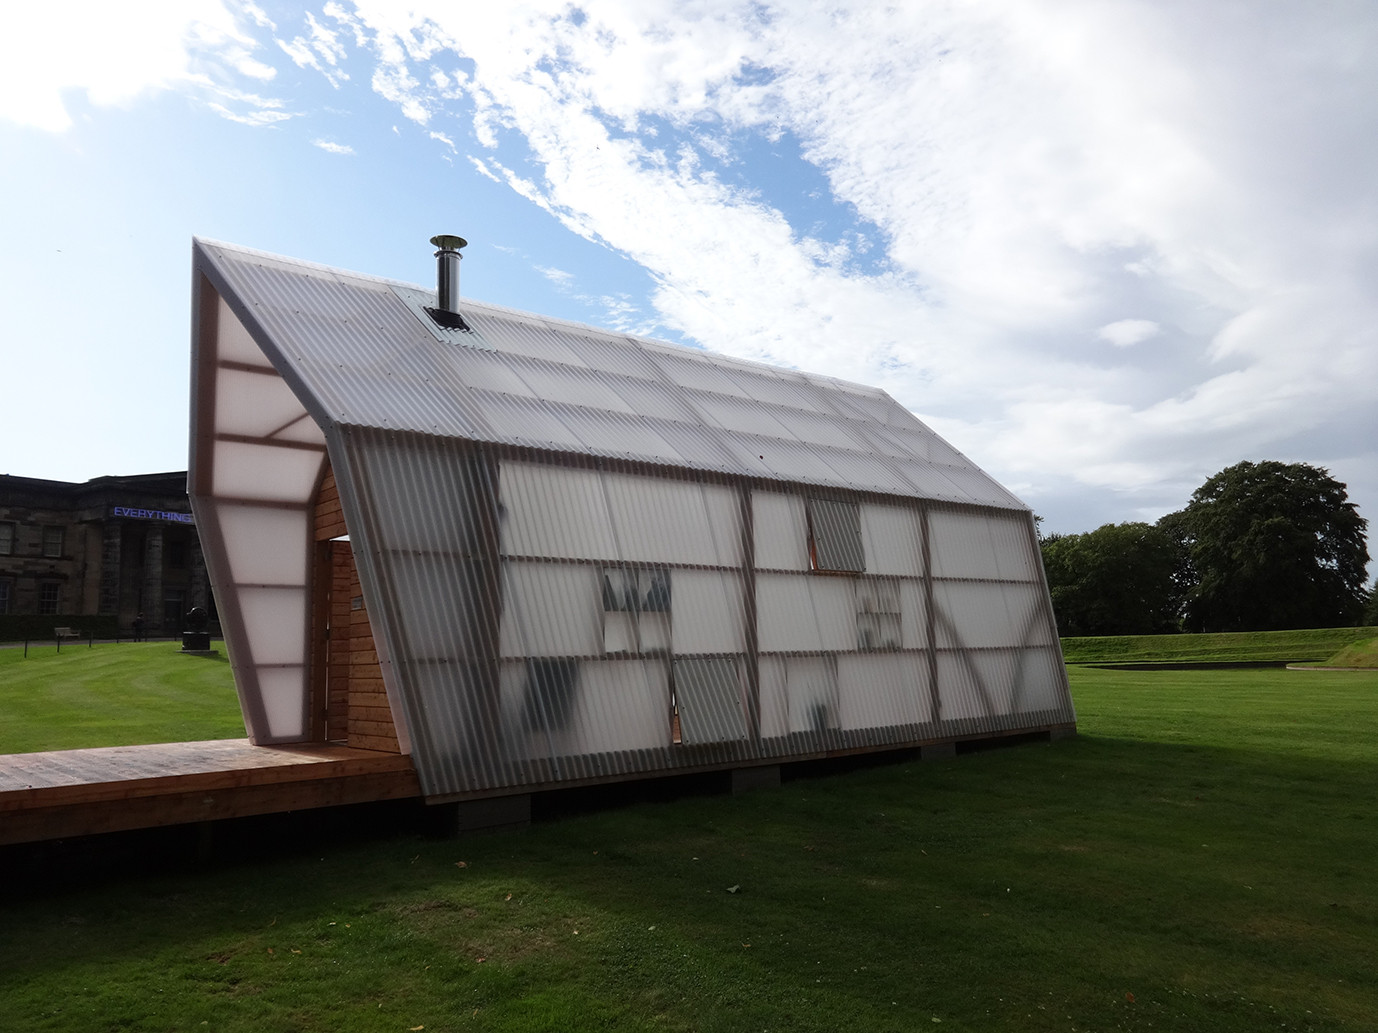 A Shed of One's Own: An Exploration of Architectural Sheds and Writer's Bothies, The Bothy Project - Pig Rock Bothy. Scottish National Gallery of Modern Art, Edinburgh, Scotland. 2014. Image Courtesy of The Building Centre